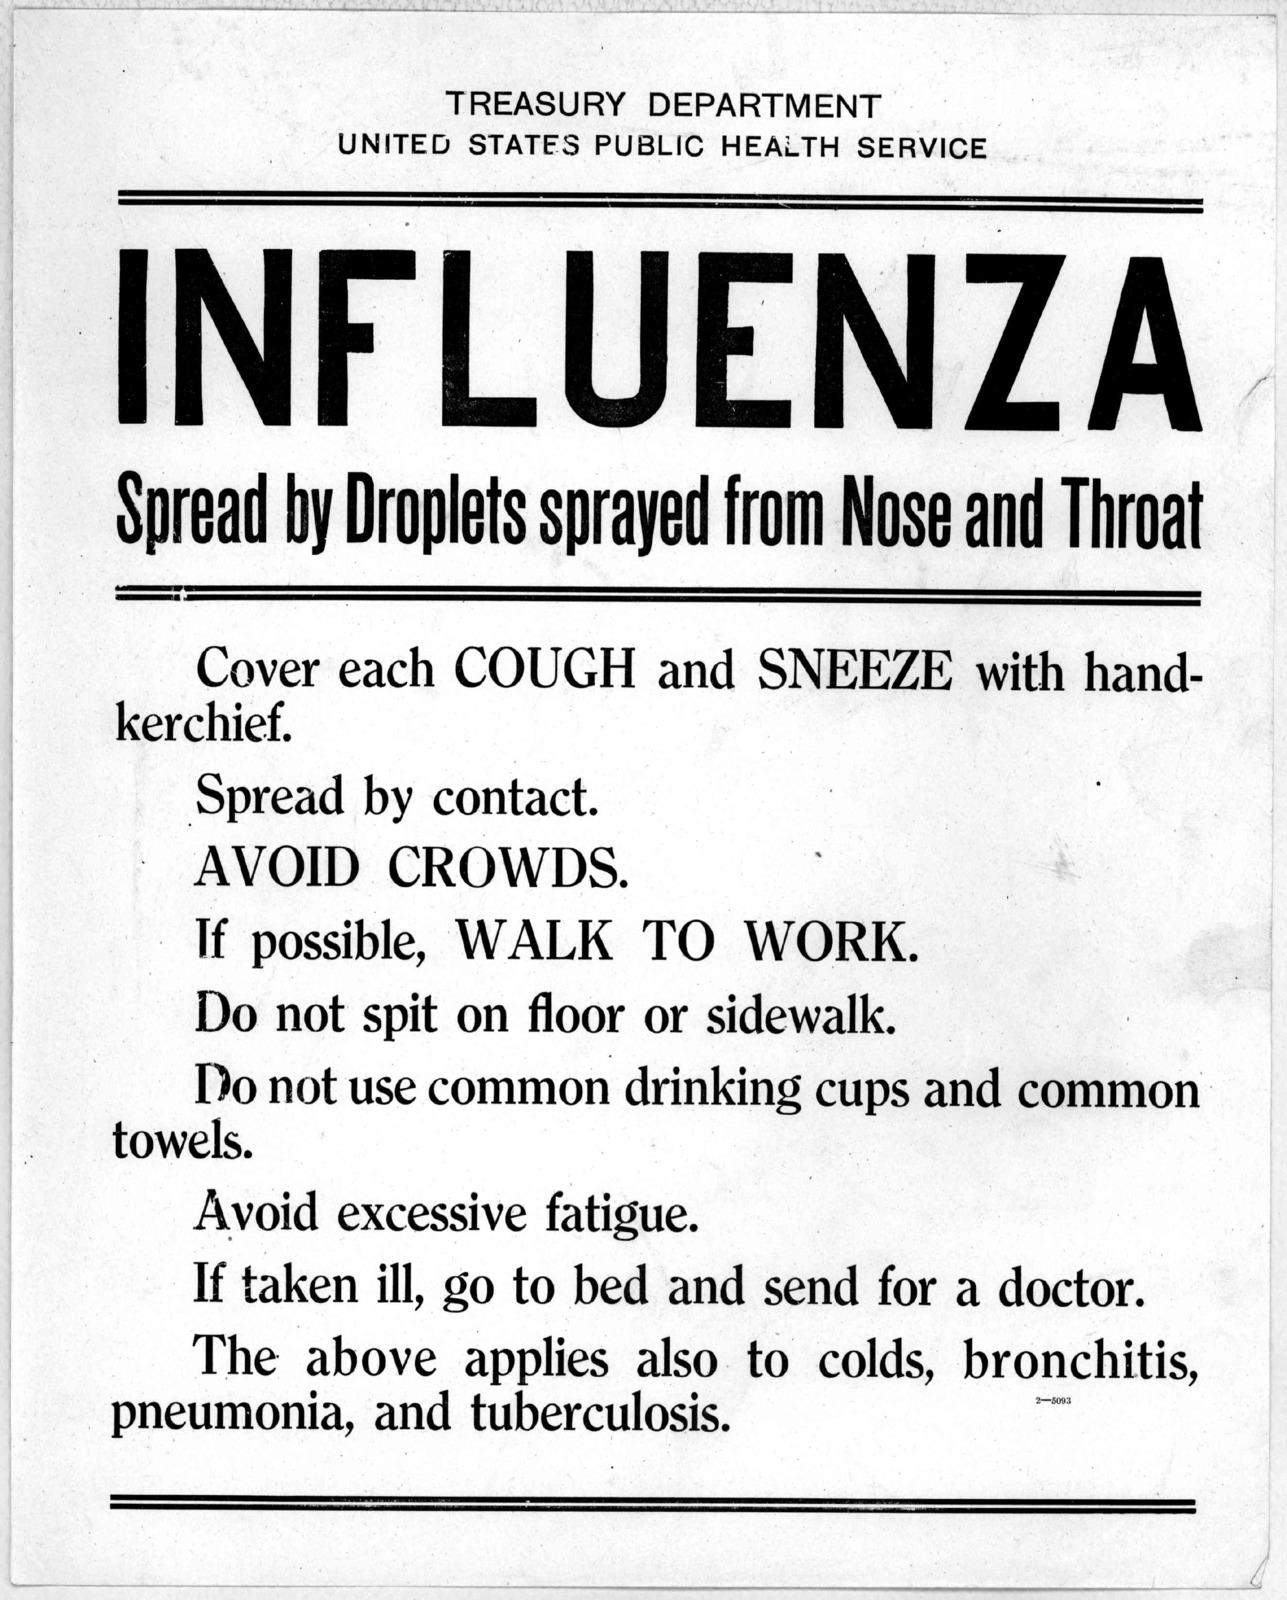 Treasury department. United States Public health service. Influenza spread by droplets sprayed from nose and throat. Cover each cough and sneeze with handkerchief. Spread by contact. Avoid crowds. If possible, walk to work. Do not spit on floor